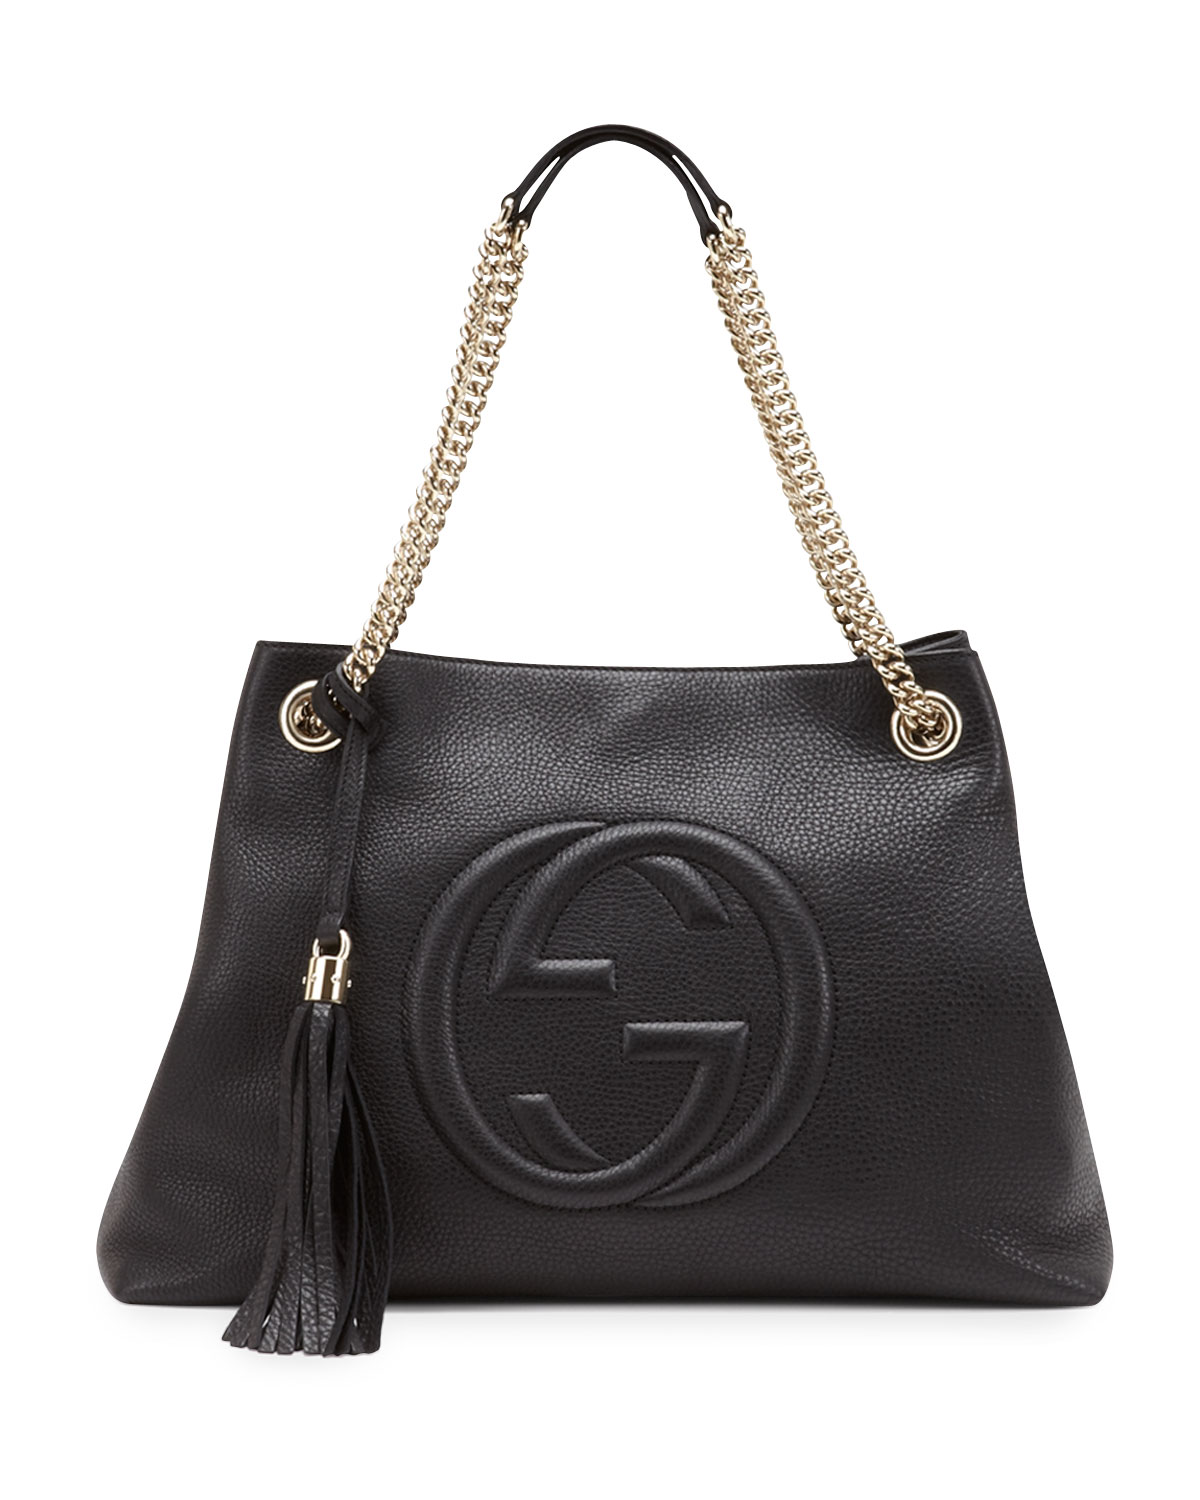 1a9d513a9402 Gucci Soho Leather Chain-Strap Tote, Black | Neiman Marcus